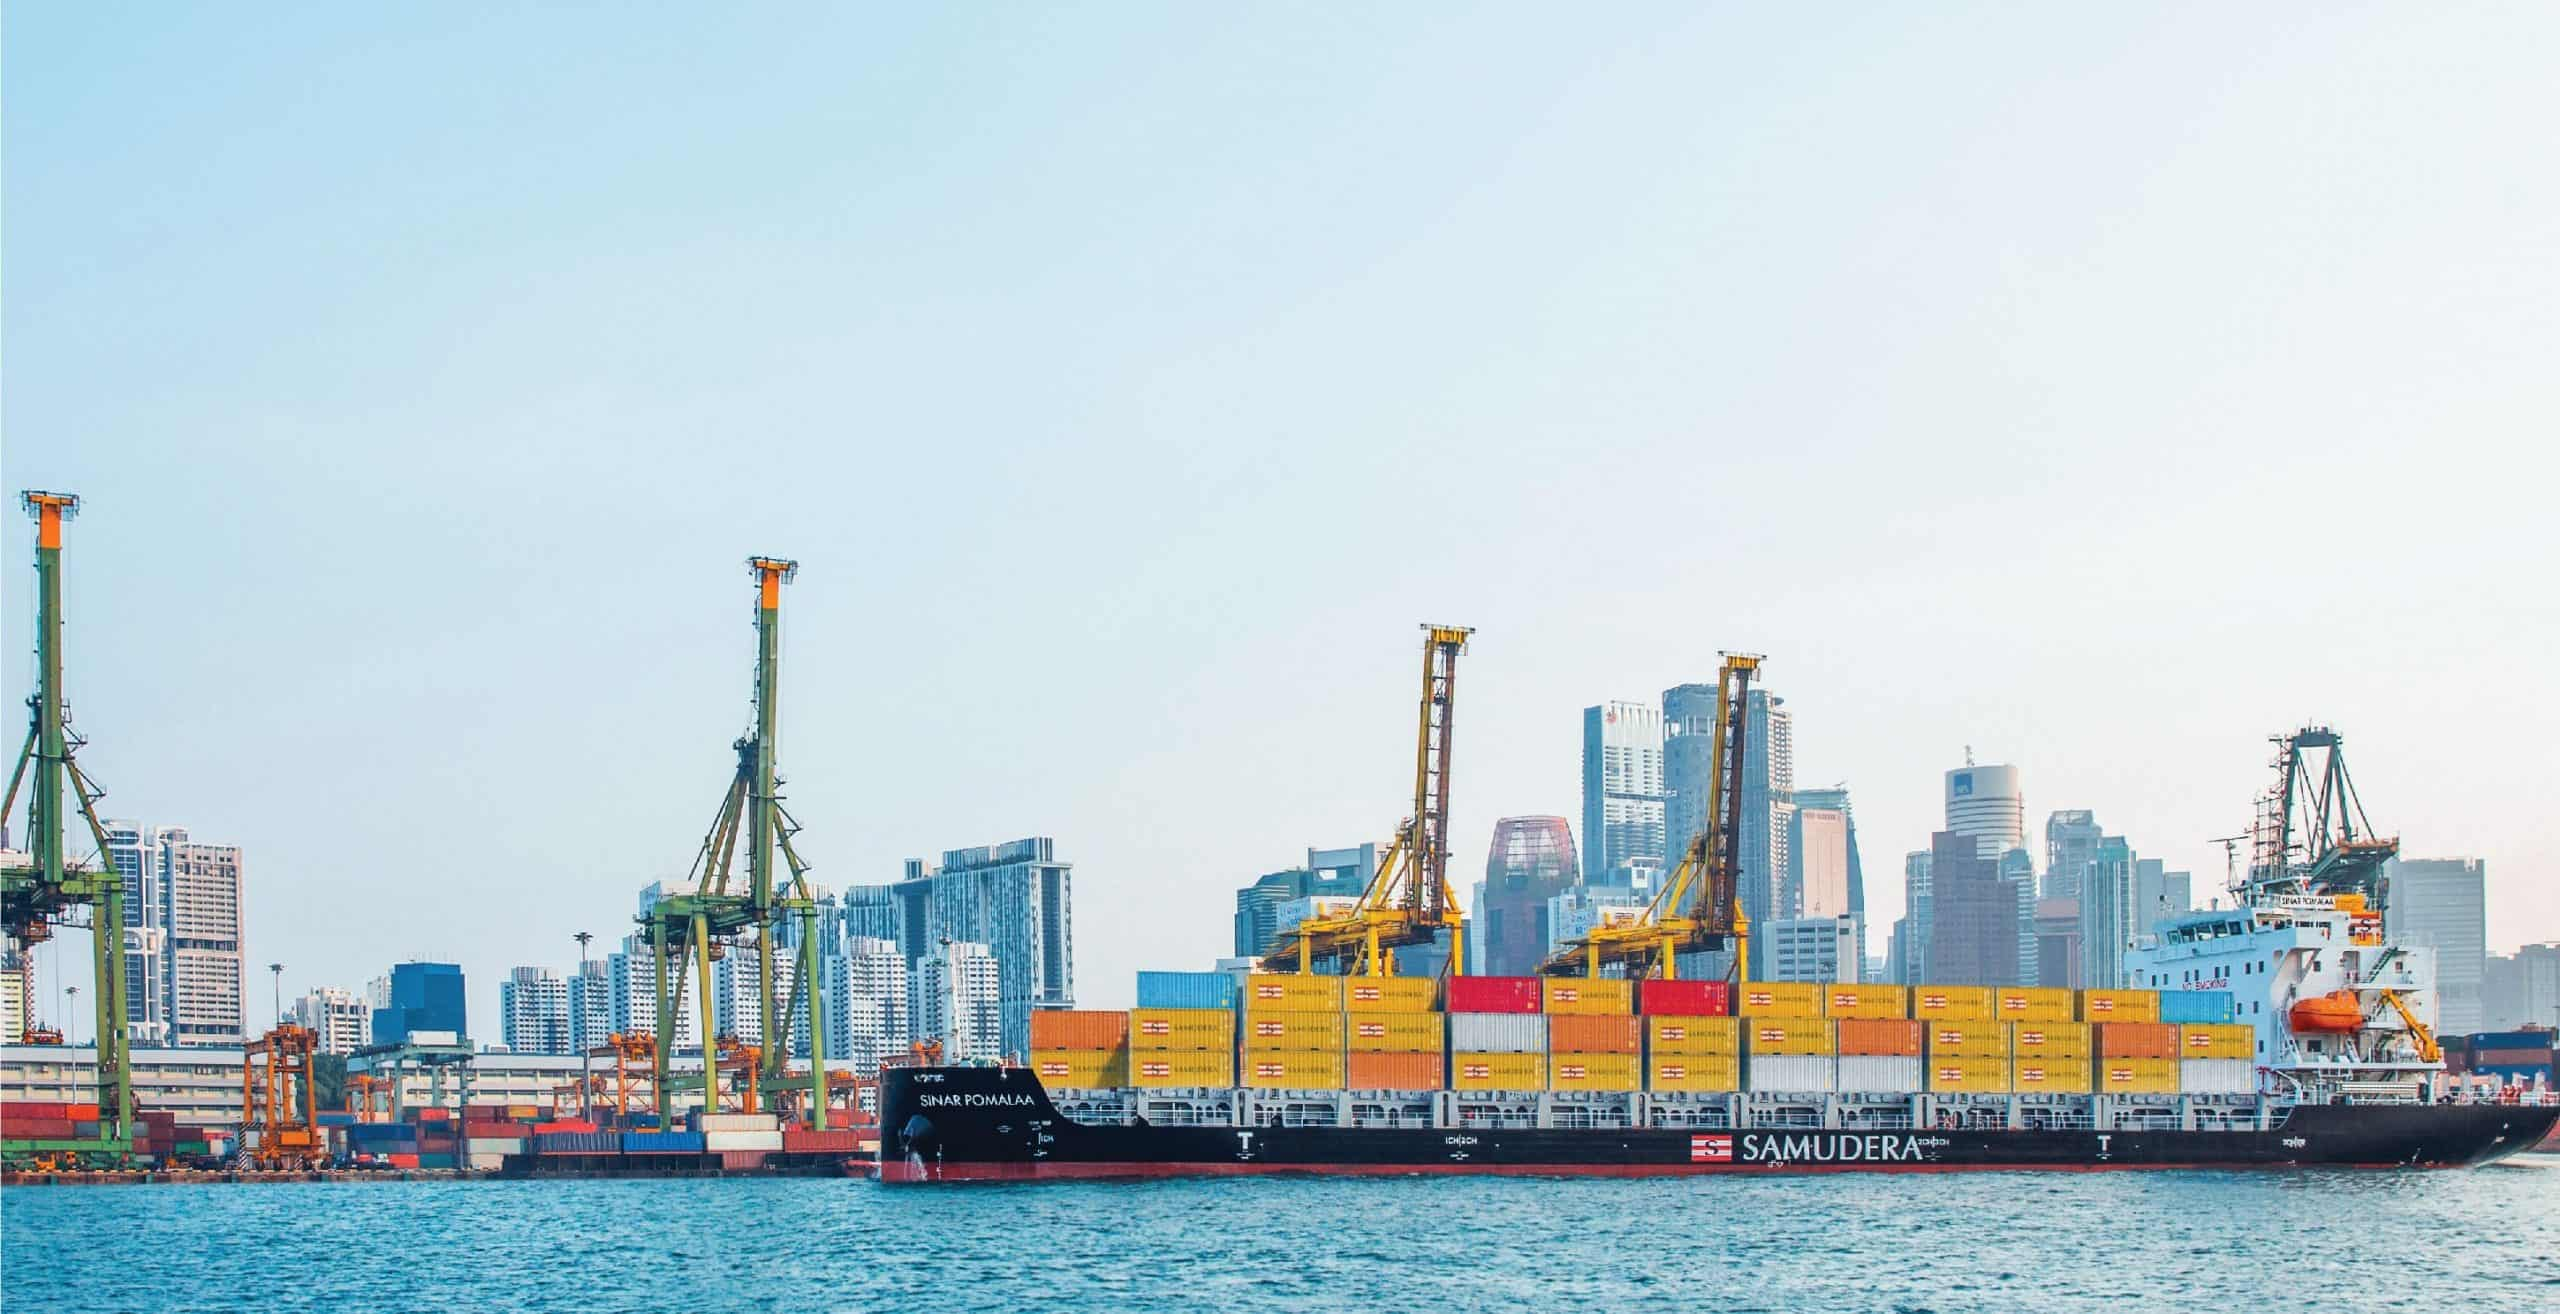 PSA and Samudera strengthen strategic partnership in solutions and logistics